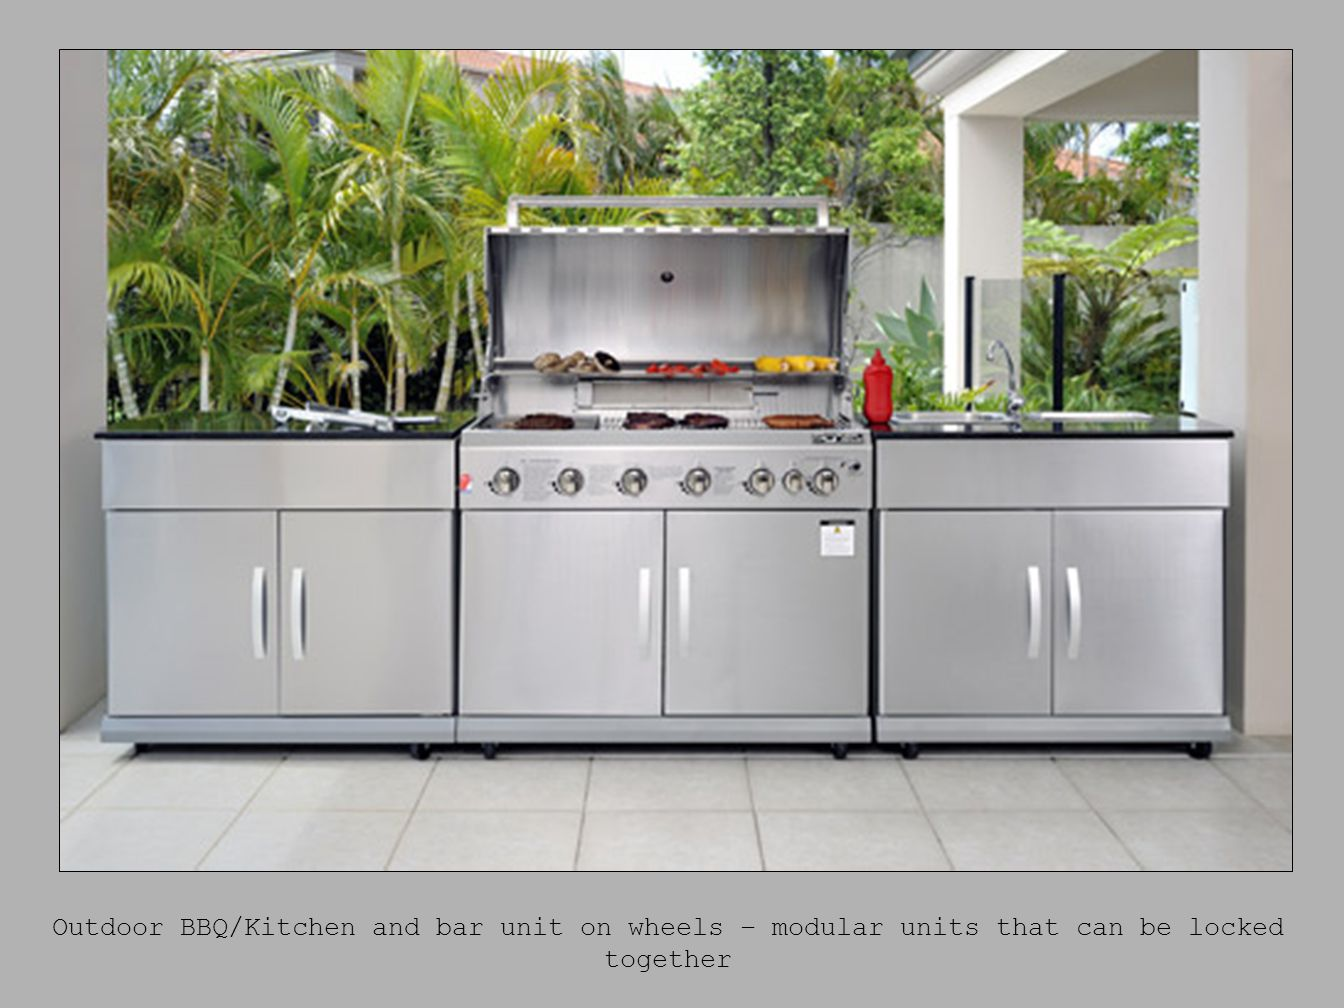 Outdoor BBQ/Kitchen and bar unit on wheels – modular units that can be locked